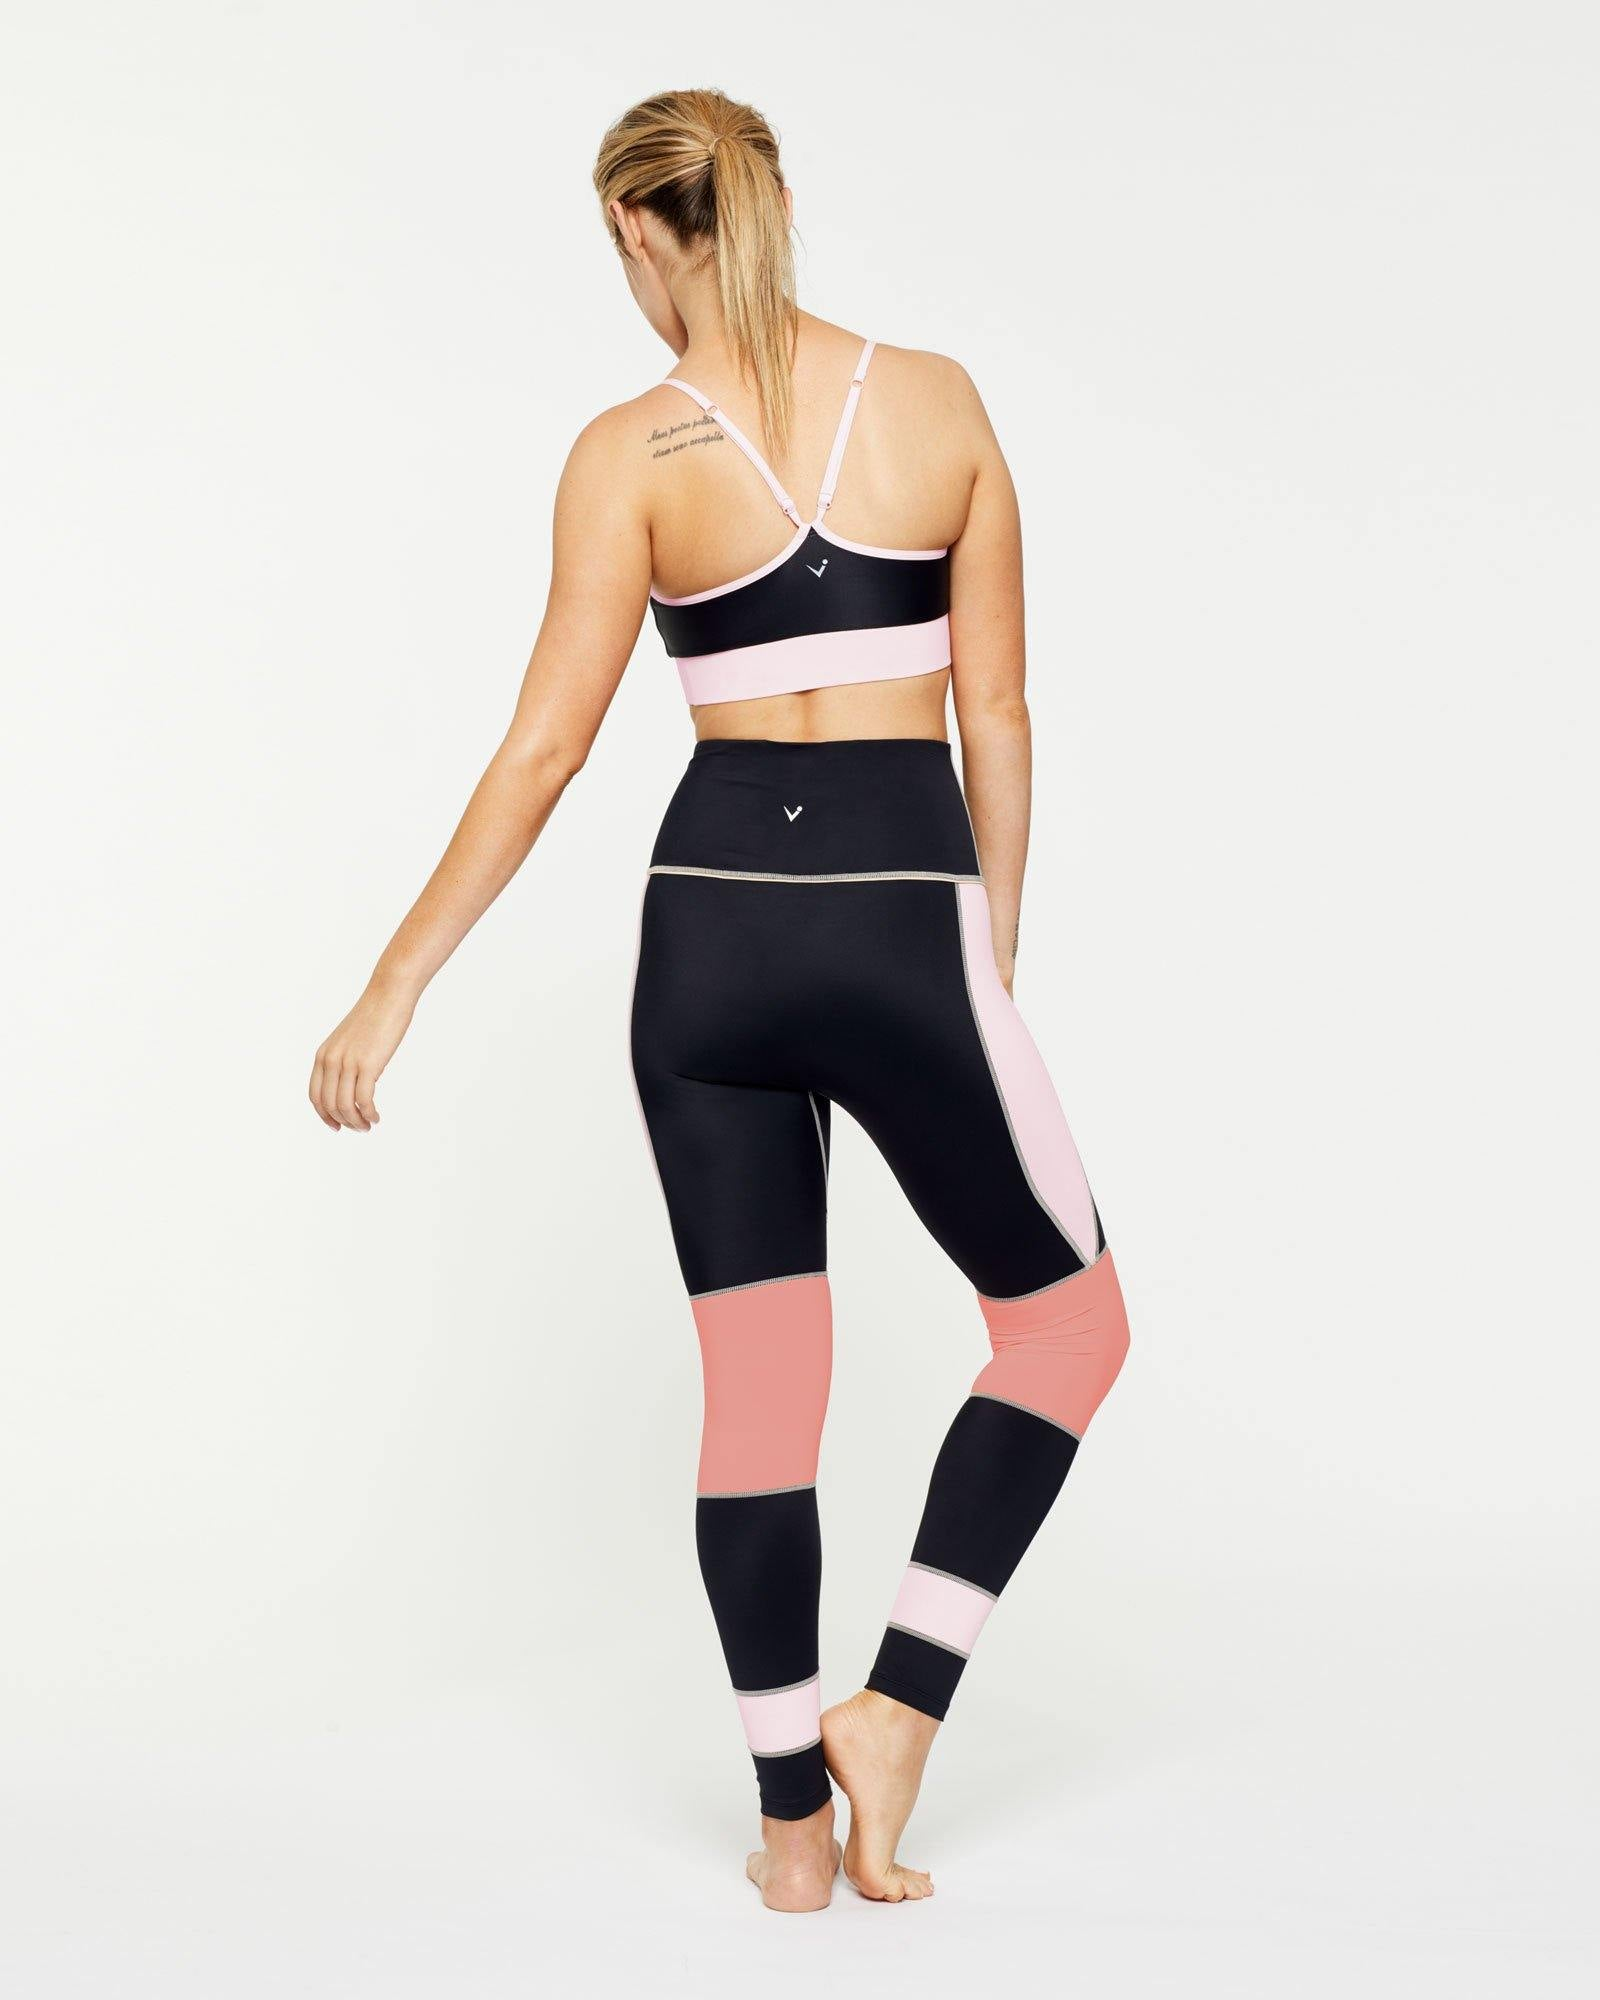 INFRASPINATUS ACTIVE TOP WITH CONTRAST UNDER BUST BAND & ADJUSTABLE STRAPS, WORN WITH GRACILIS FULL LENGTH LEGGING, WARRIOR SOPHISTICATE COLLECTION BACK VIEW